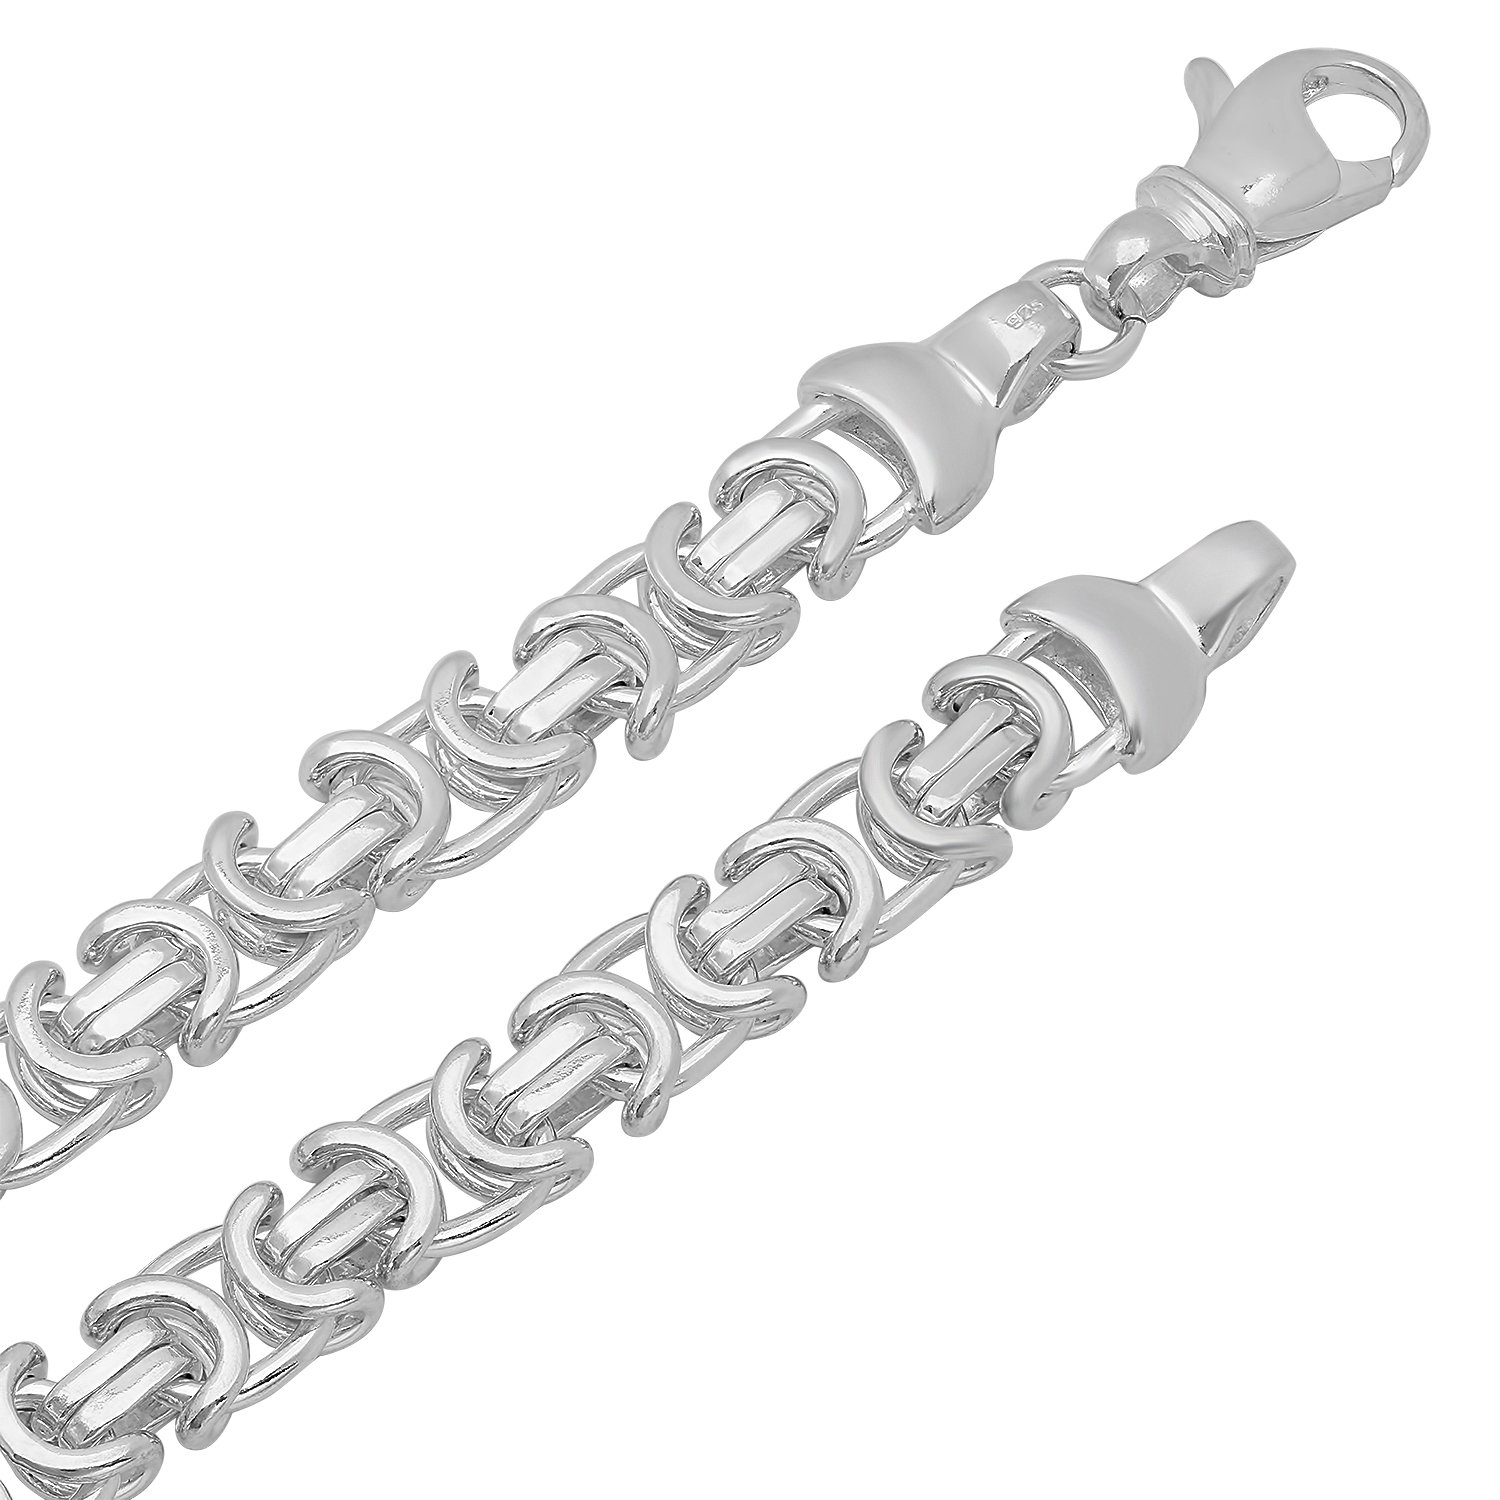 8mm 925 Sterling Silver Nickel-Free Byzantine Link Chain, 18'' - Made in Italy + Cleaning Cloth by The Bling Factory (Image #2)